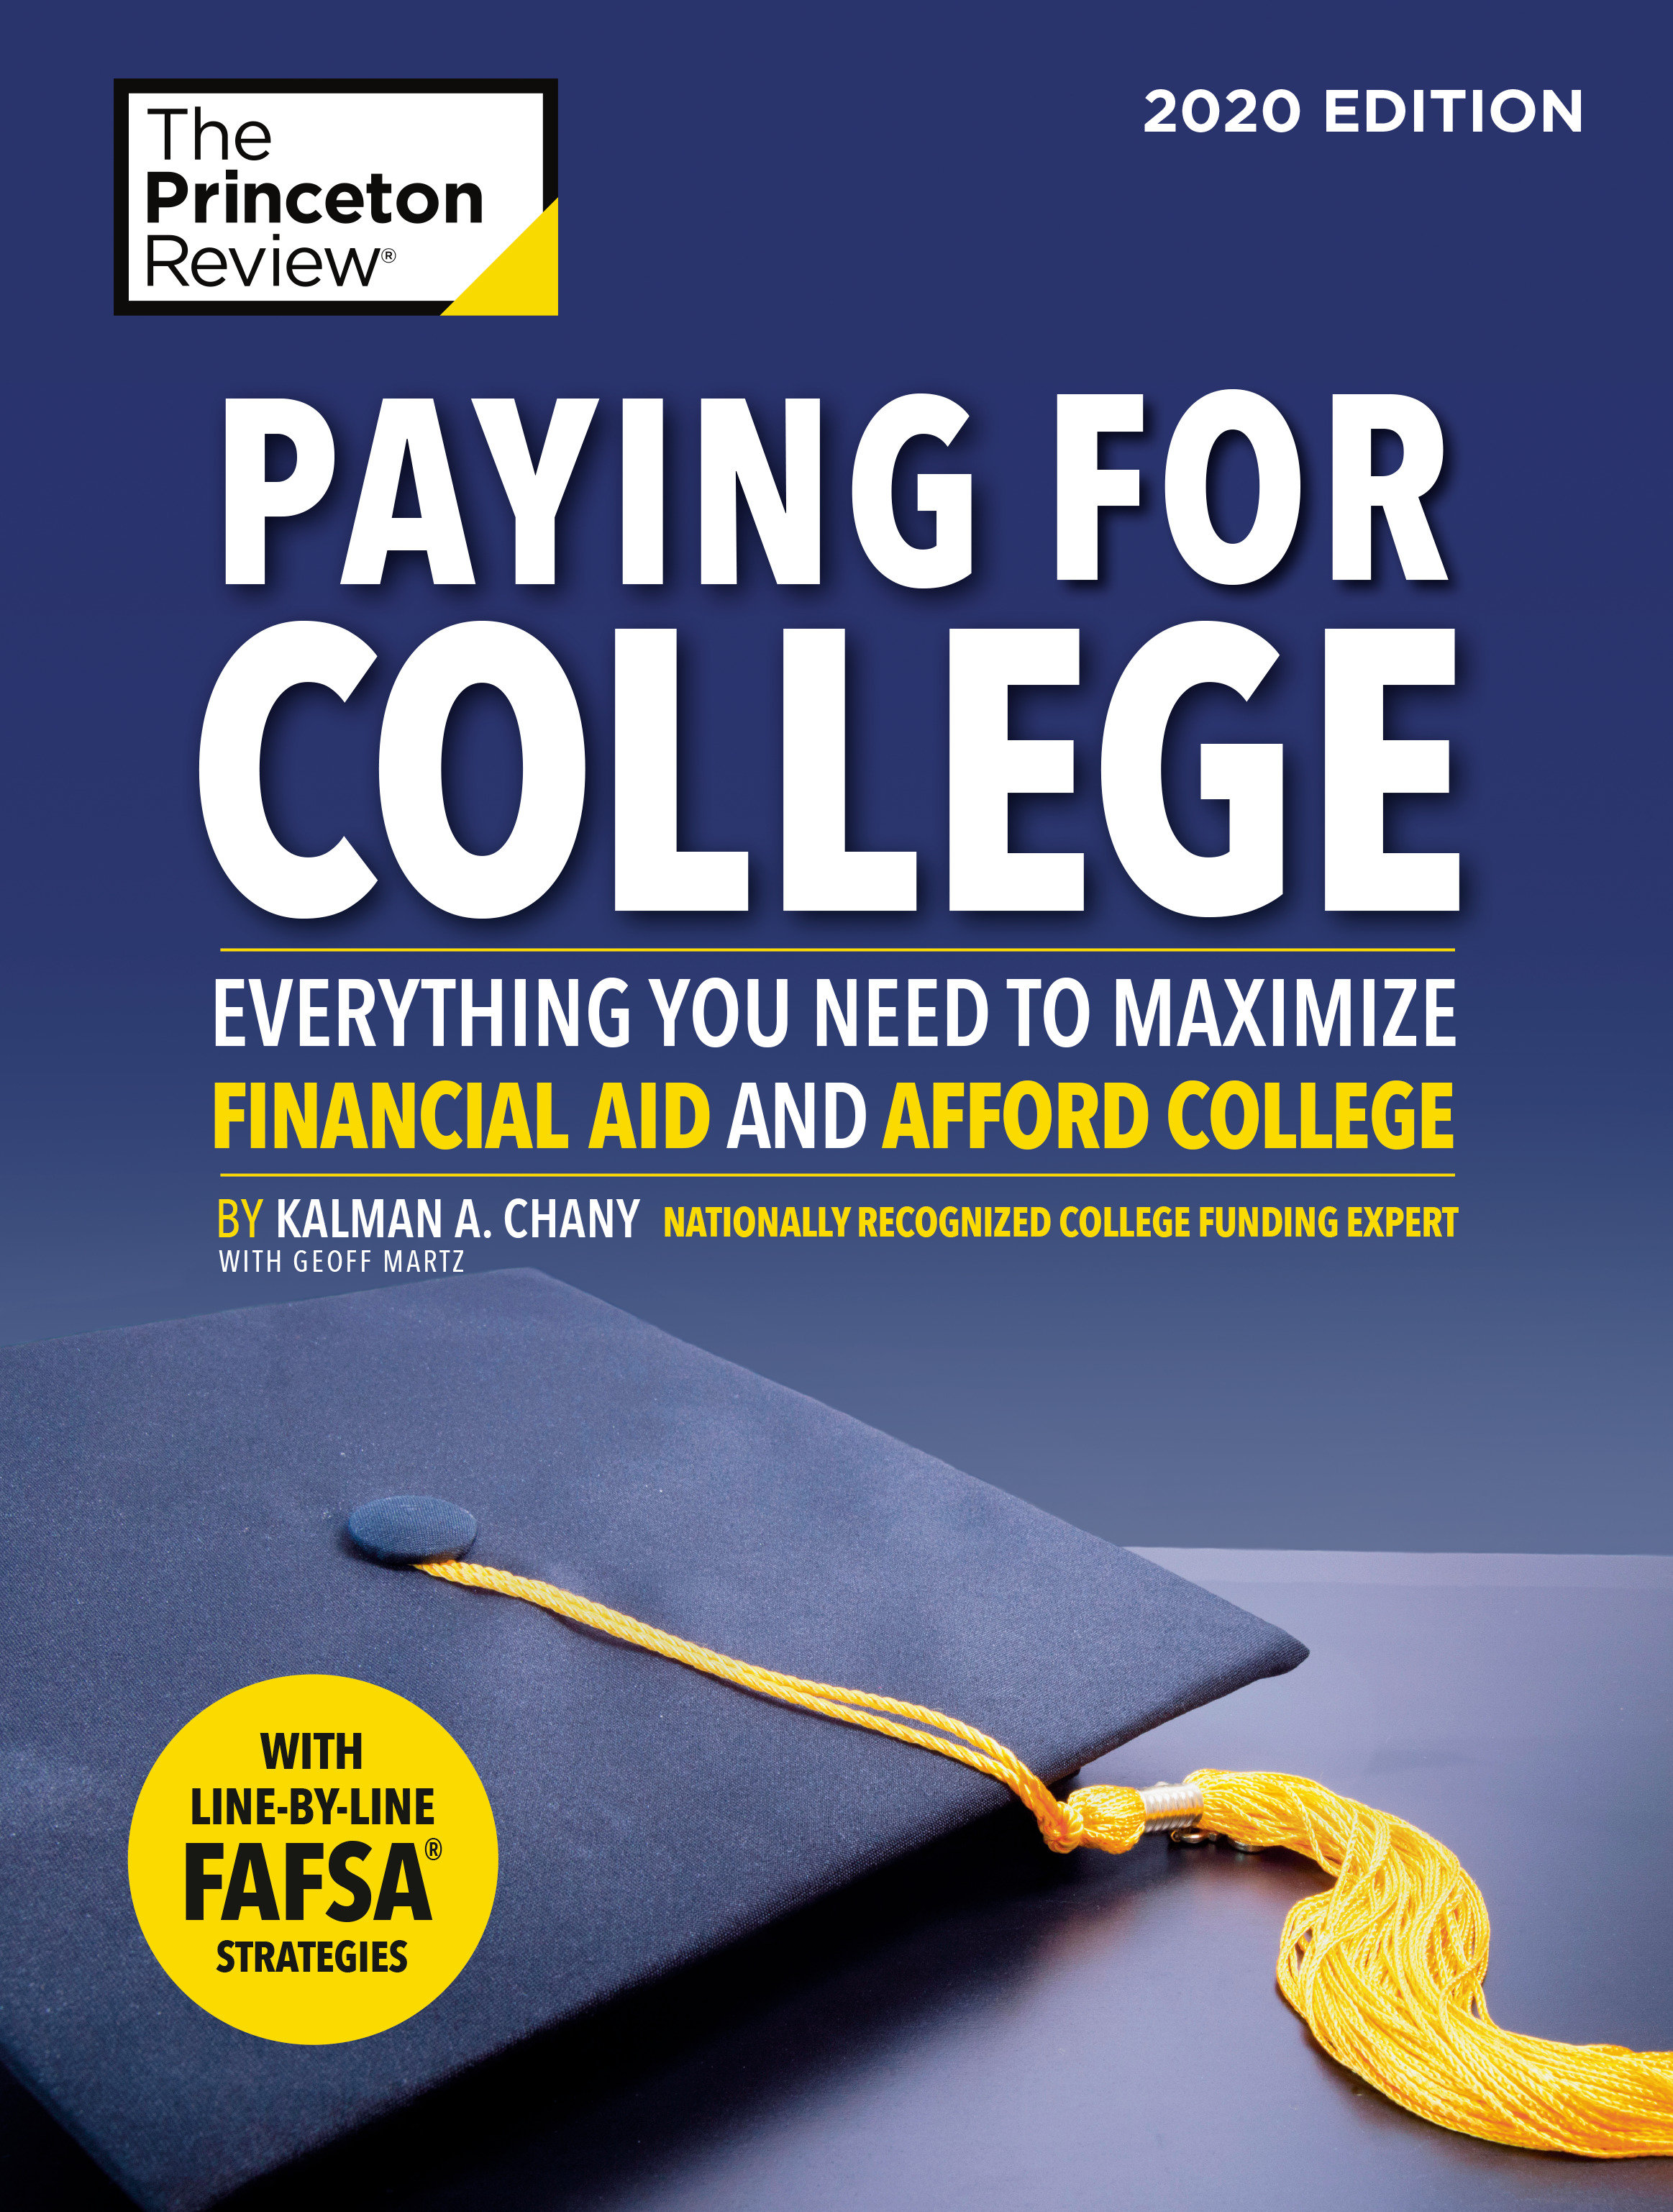 Paying for College, 2020 Edition Everything You Need to Maximize Financial Aid and Afford College